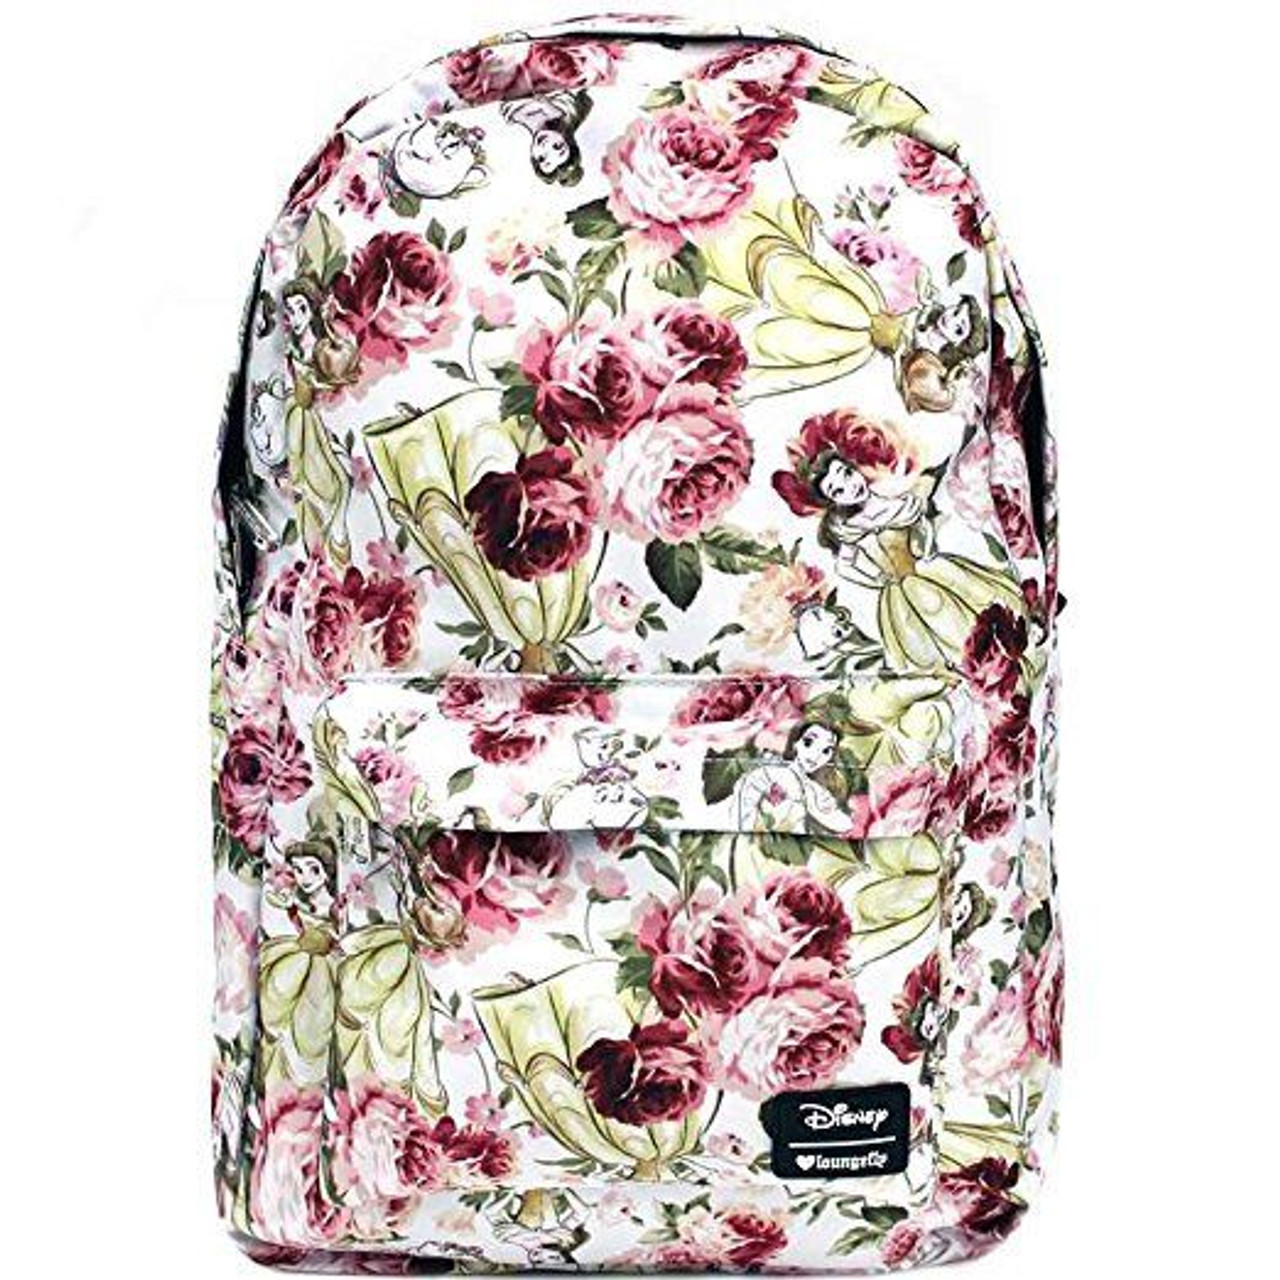 6d42ef47fb7 Loungefly Disney Beauty and the Beast Belle Floral Womens Backpack WDBK0348  - Fearless Apparel